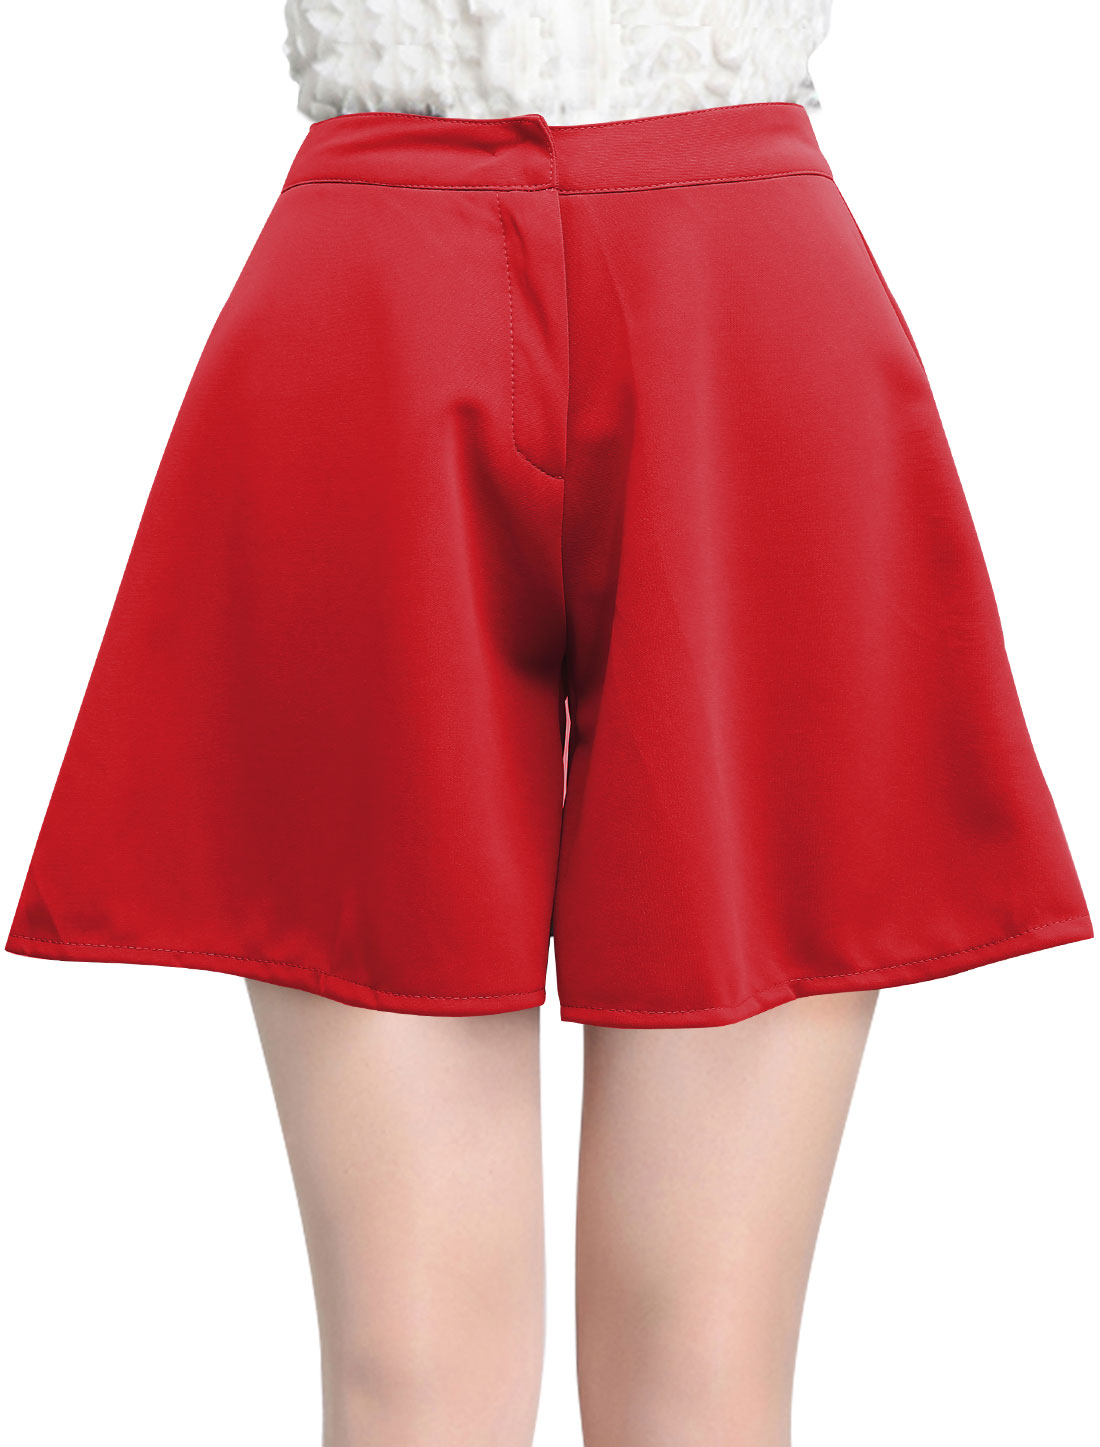 Lady High Waist Zip Up Loose Fit Casual Shorts Red S